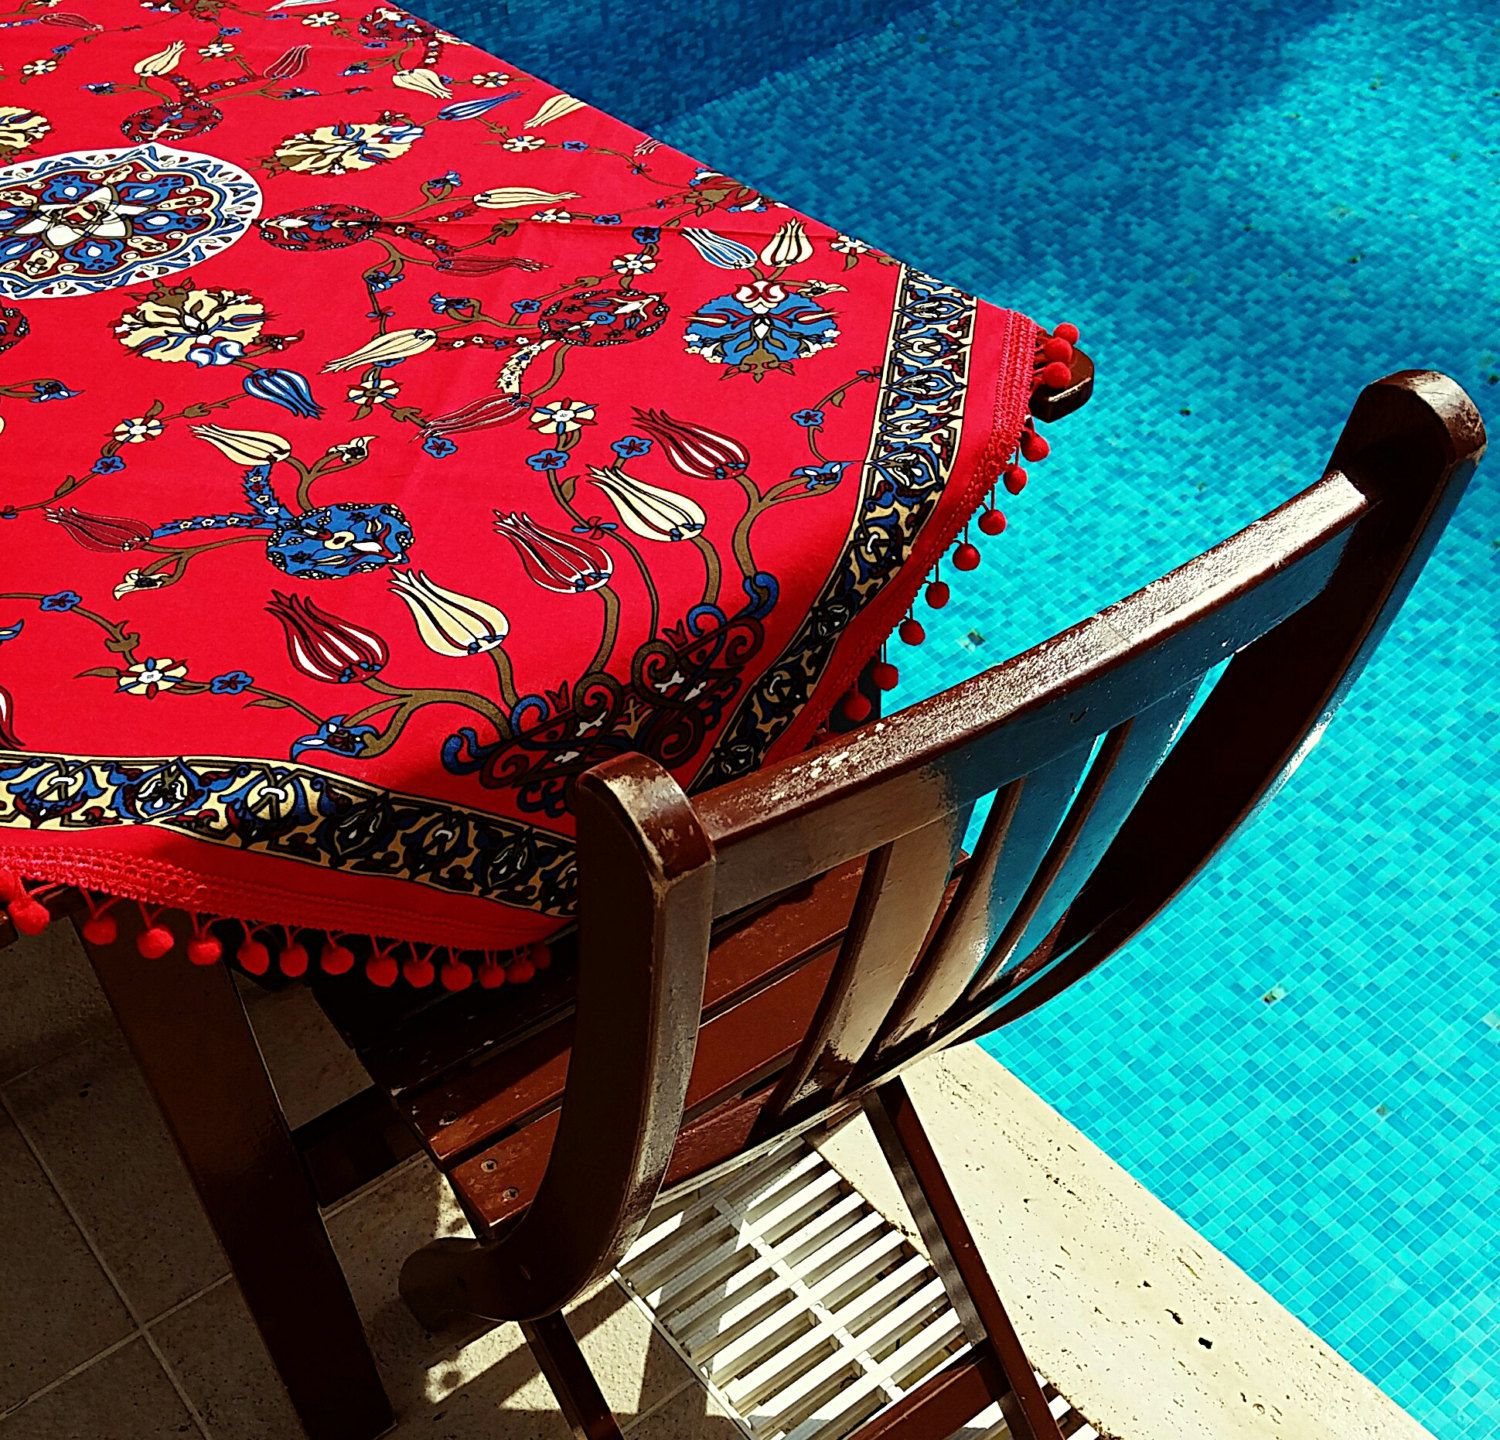 123x126cm Ottoman Red Floral Tile Patterned Colorful Tablecloth Authentic  Pomu2026